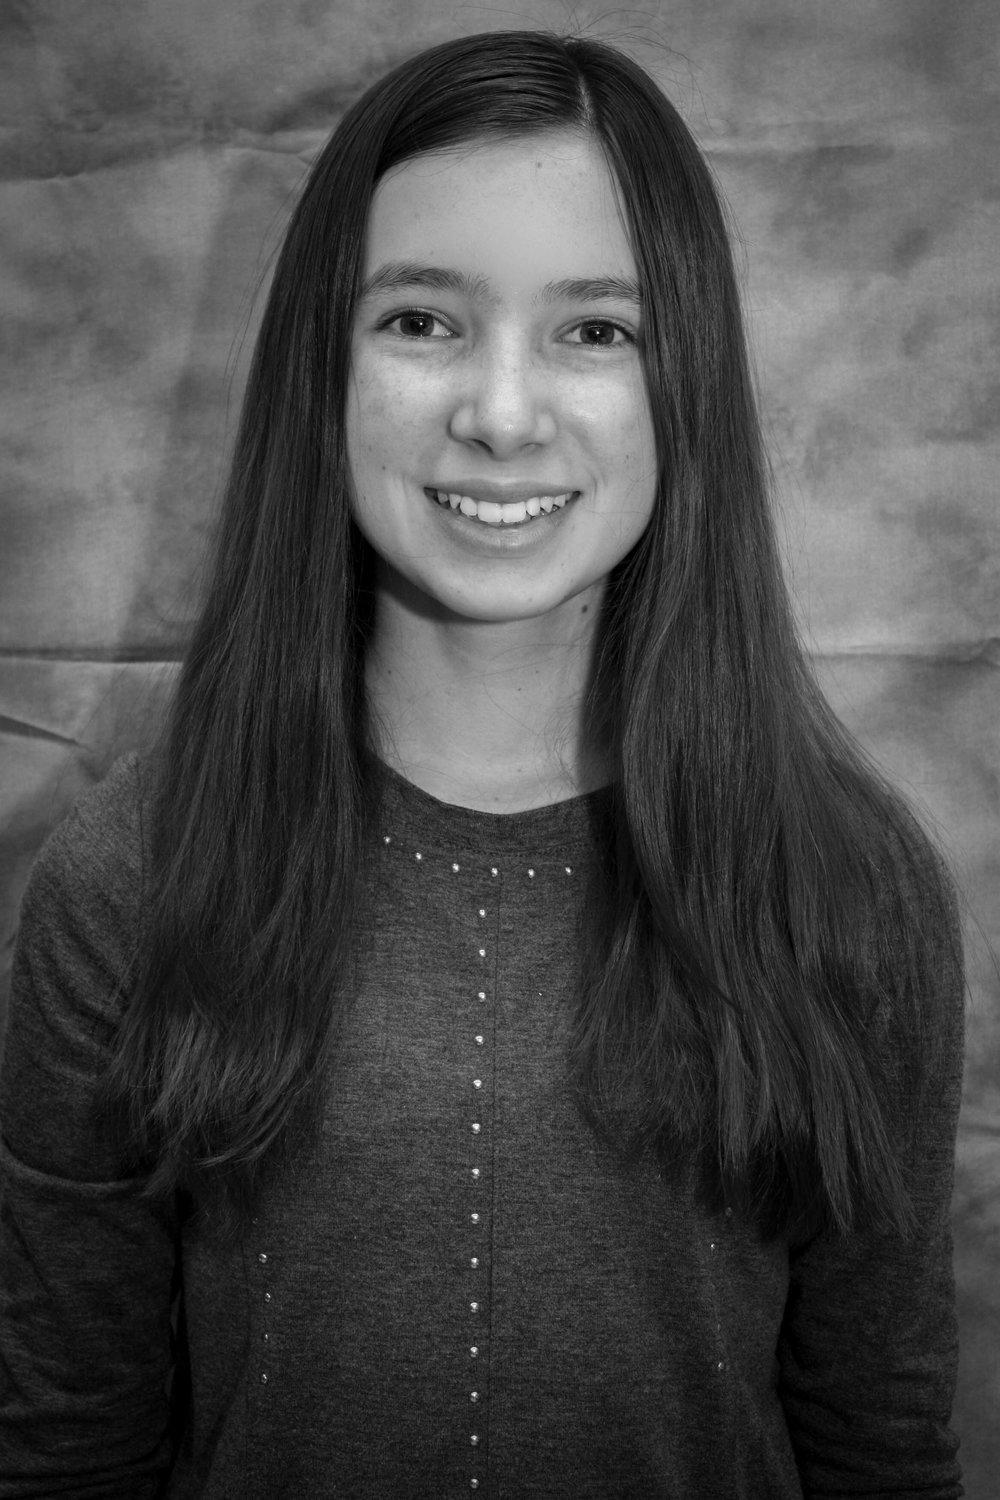 Matilda, Charlie Bucket u/s - Kathryn is a seventh grade choir major. This is her second musical at Lamar. She most recently appeared in The Healing Leaves (Irina) and Seussical Jr. (Who). She is in dance, choir, and theatre at Lamar and is thrilled to be a part of this amazing production. Kathryn would like to thank her family, friends, and amazing voice teacher for all of the constant love and support. She is positive you will love the show!